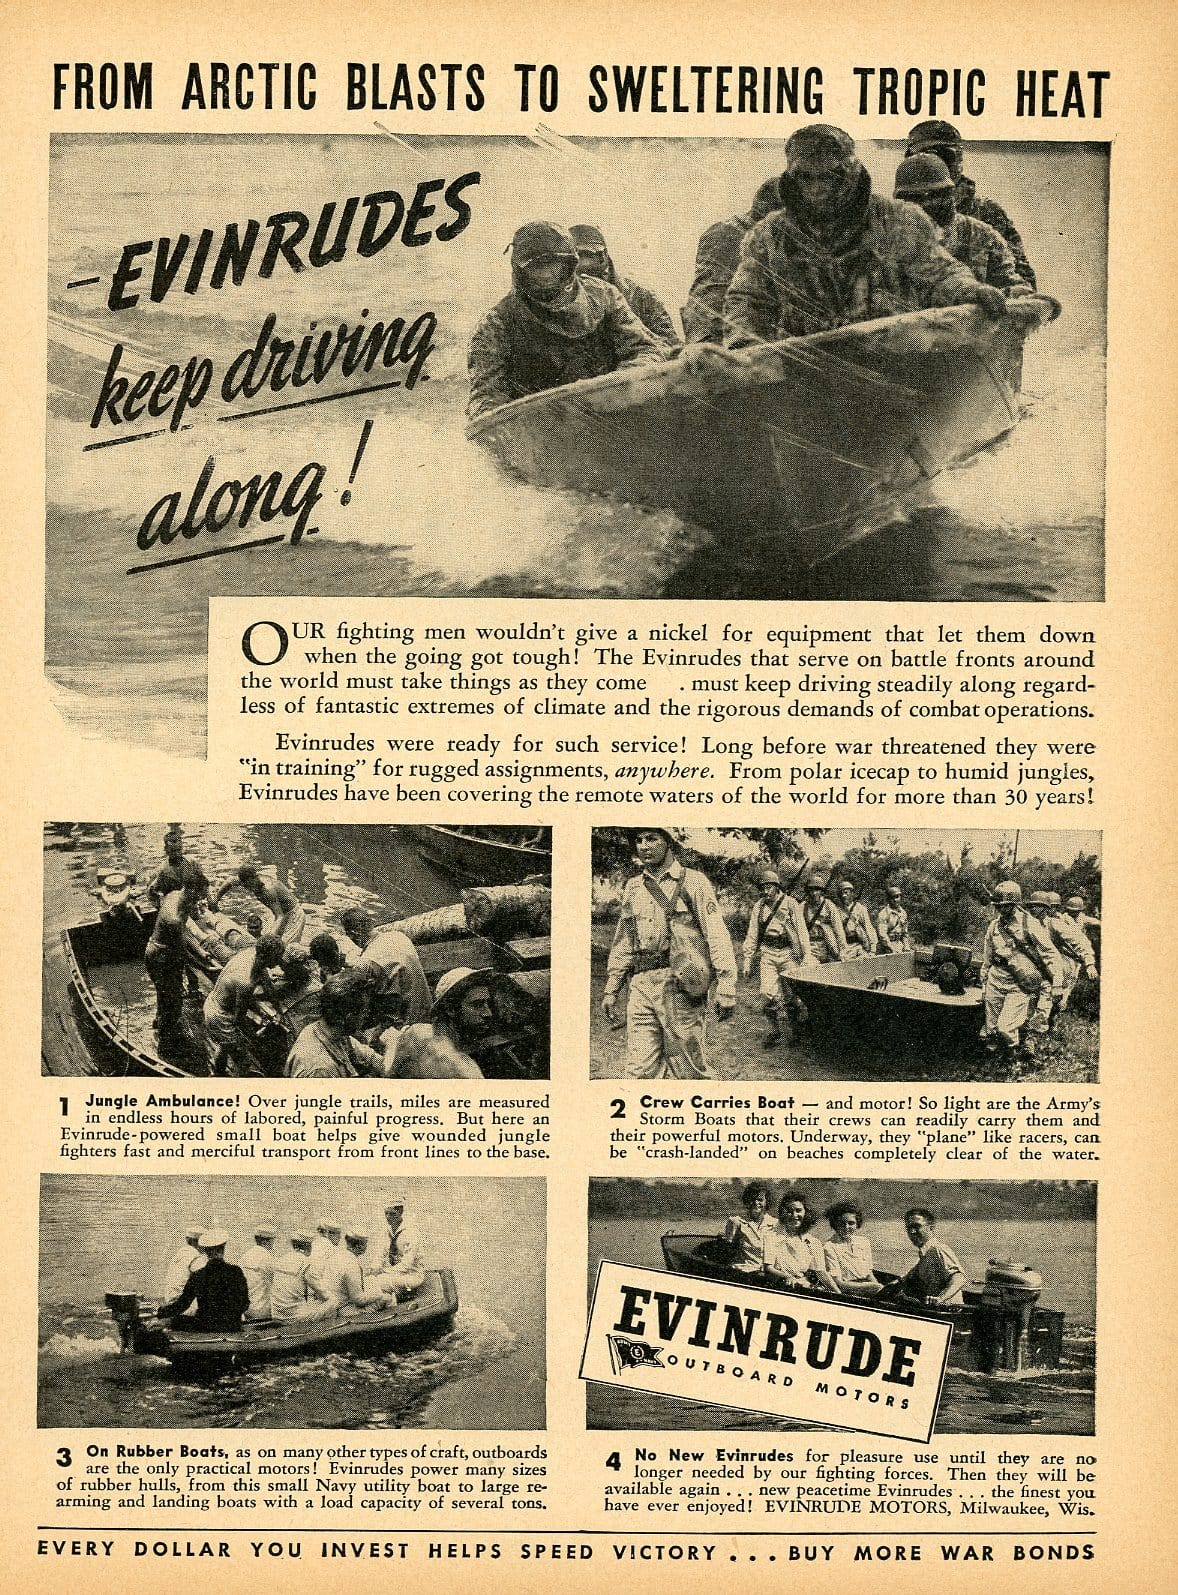 1940's Evinrude Outboard Motors Advertisement - Vintage Boat Design - Watersport Lover Gift